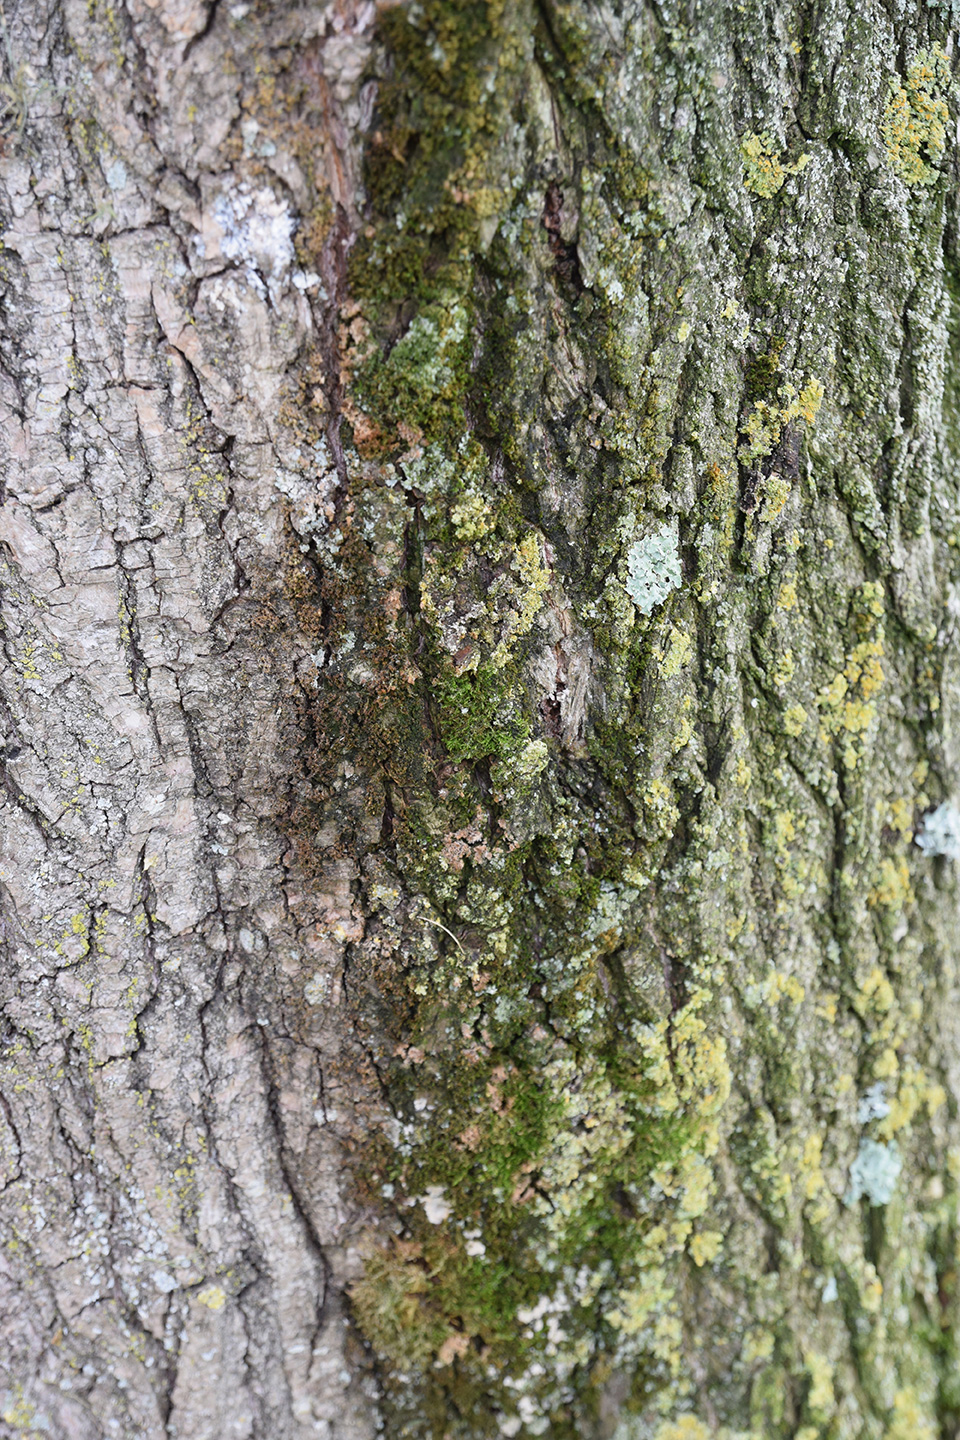 Willow tree bark dipped in green, Sausalito CA